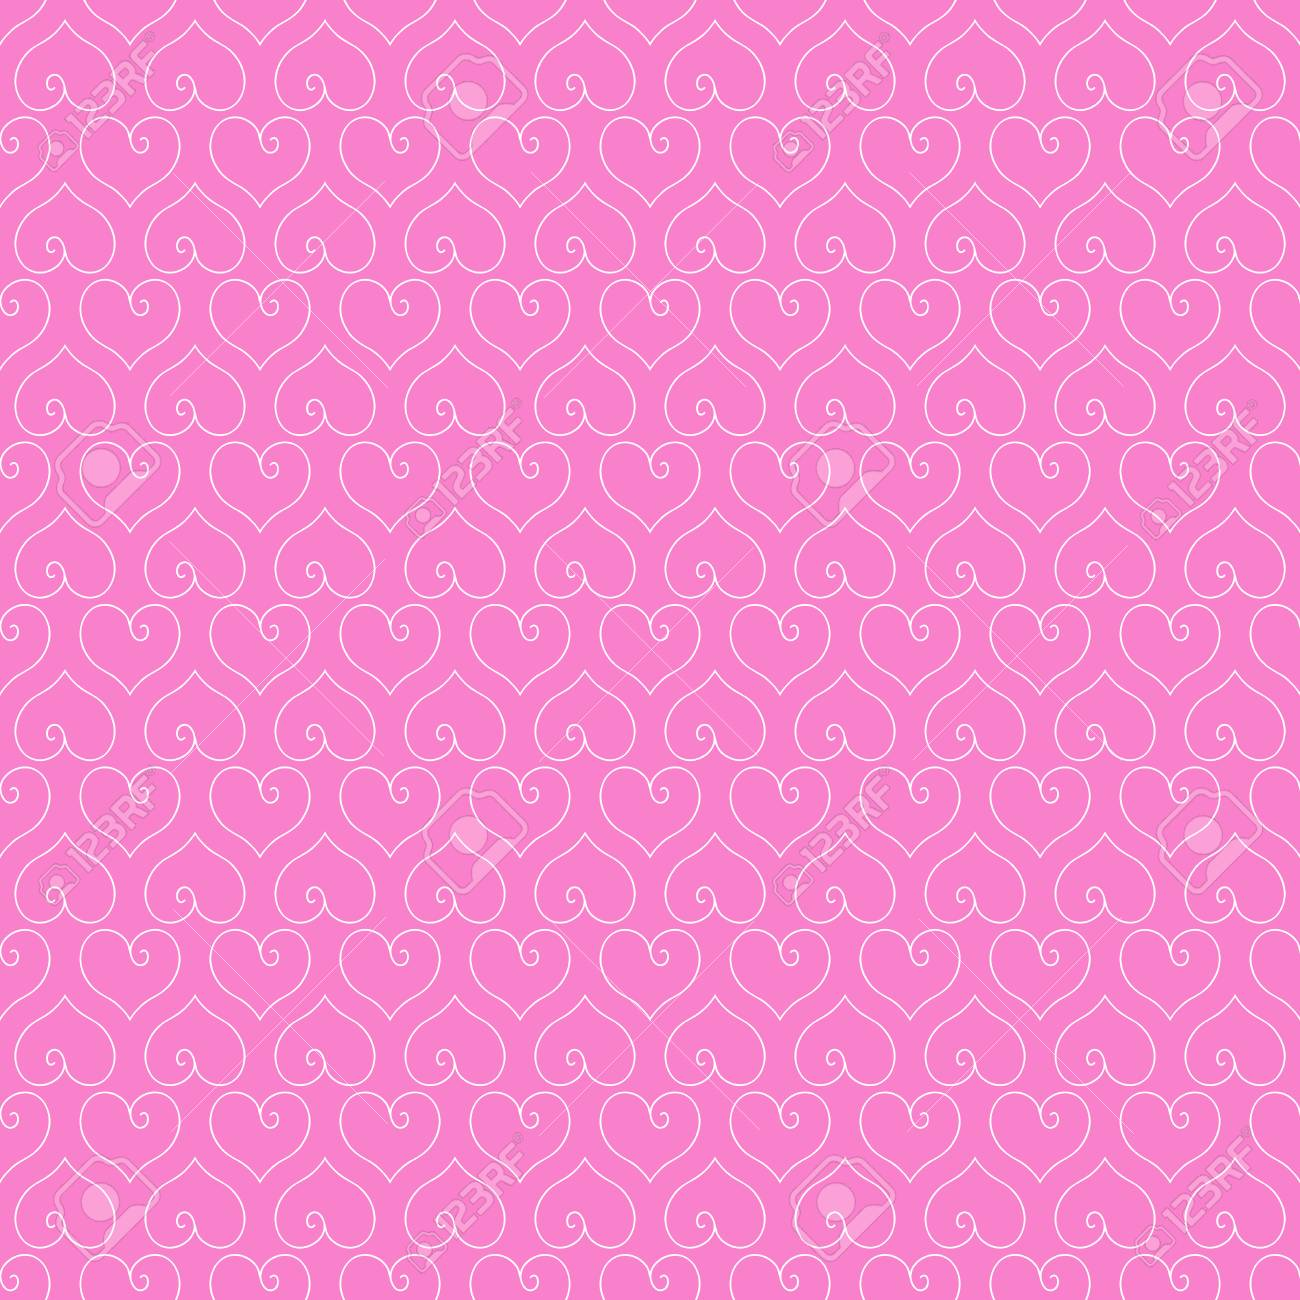 A Seamless Pink Background With White Hearts Love Wallpaper Vector Illustration Stock